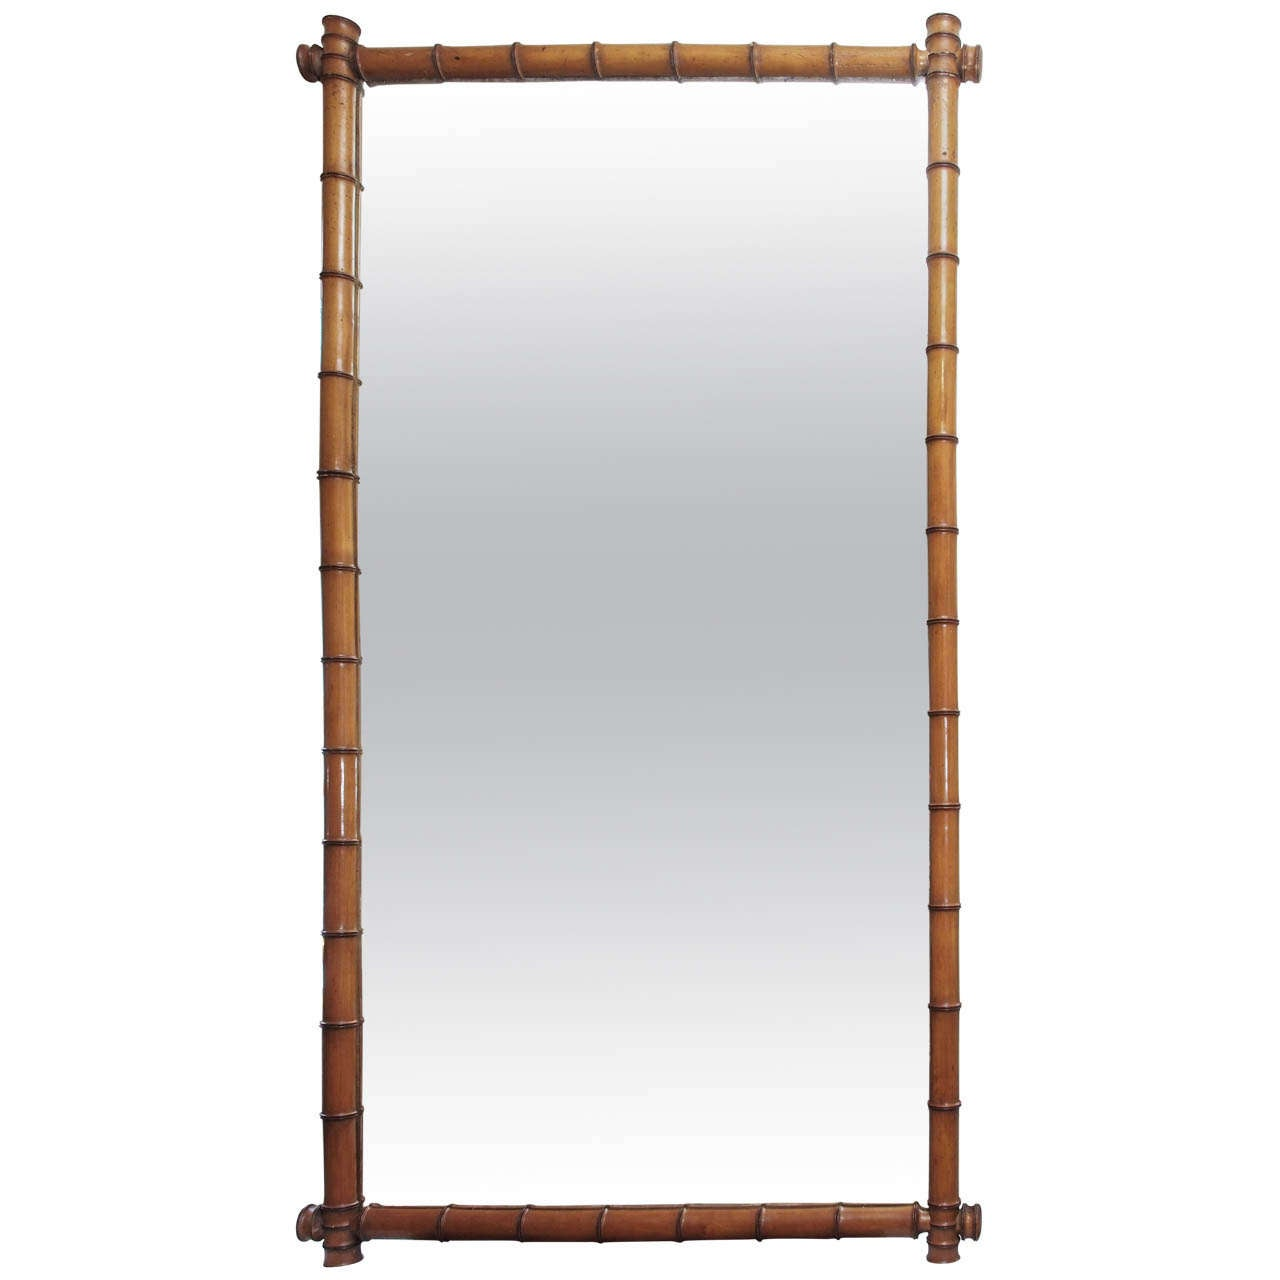 1950s Large Bamboo Mirror